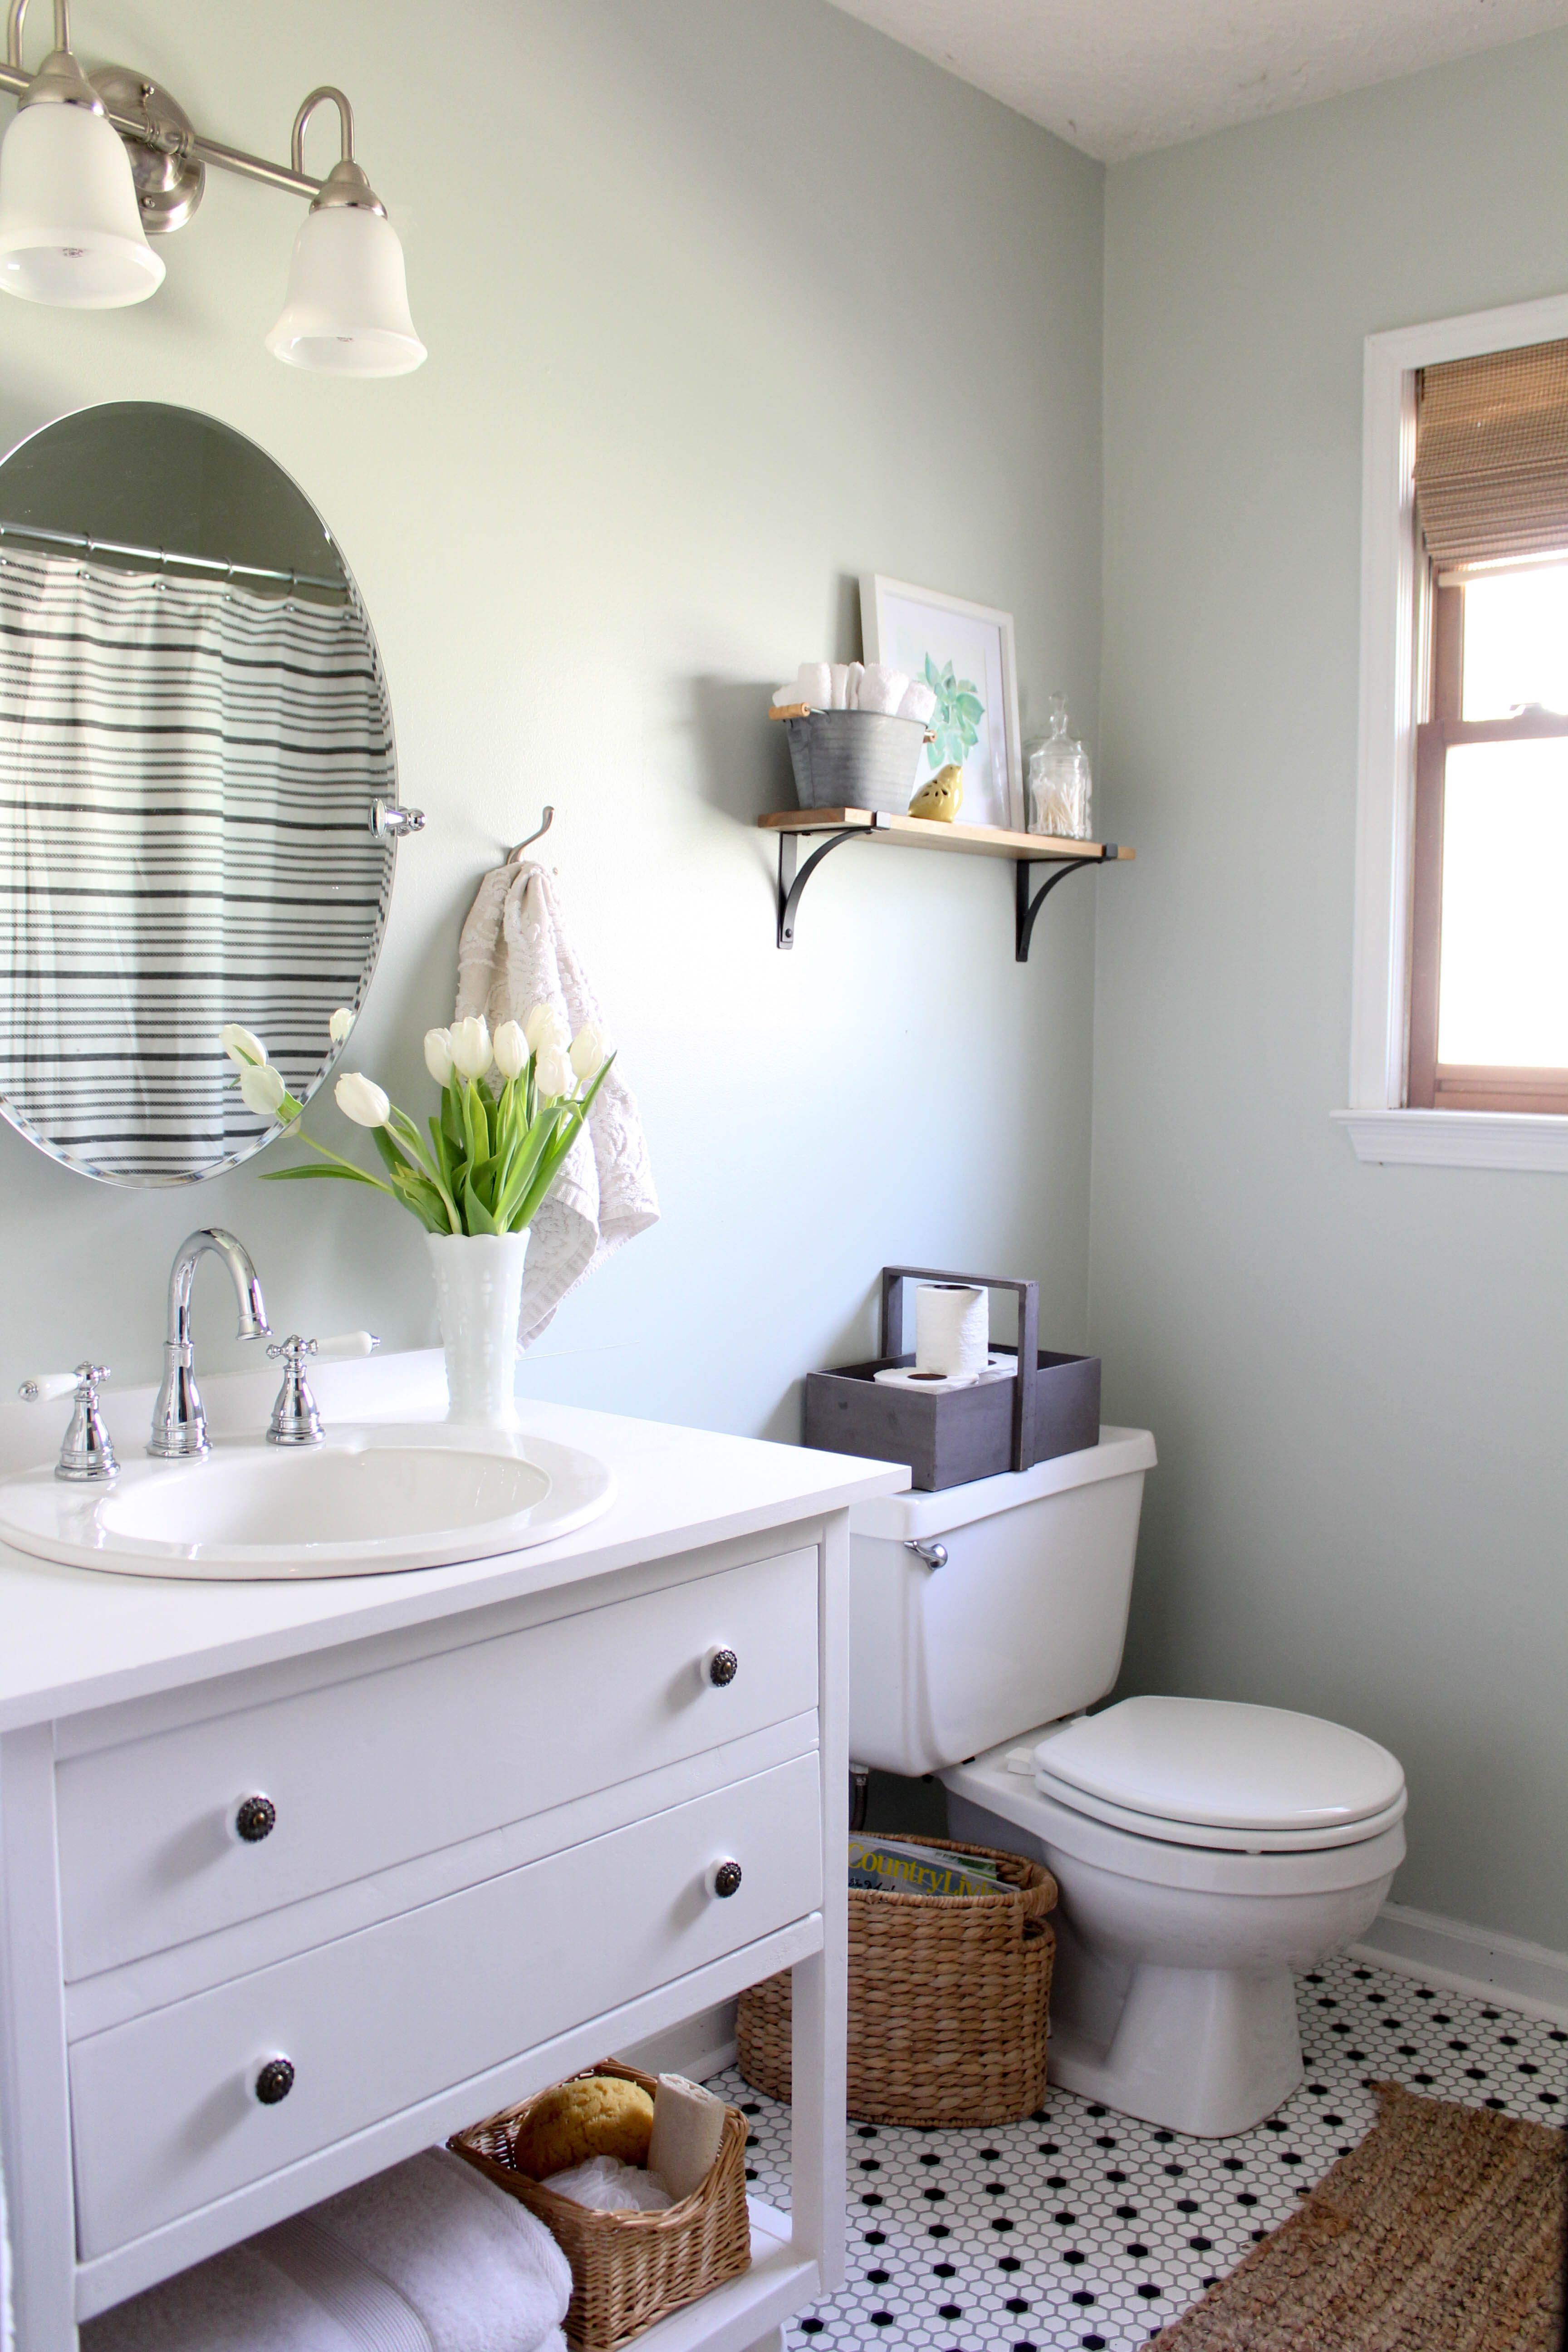 Our Budget Friendly Guest Bath Update Budget Bathroom Remodel